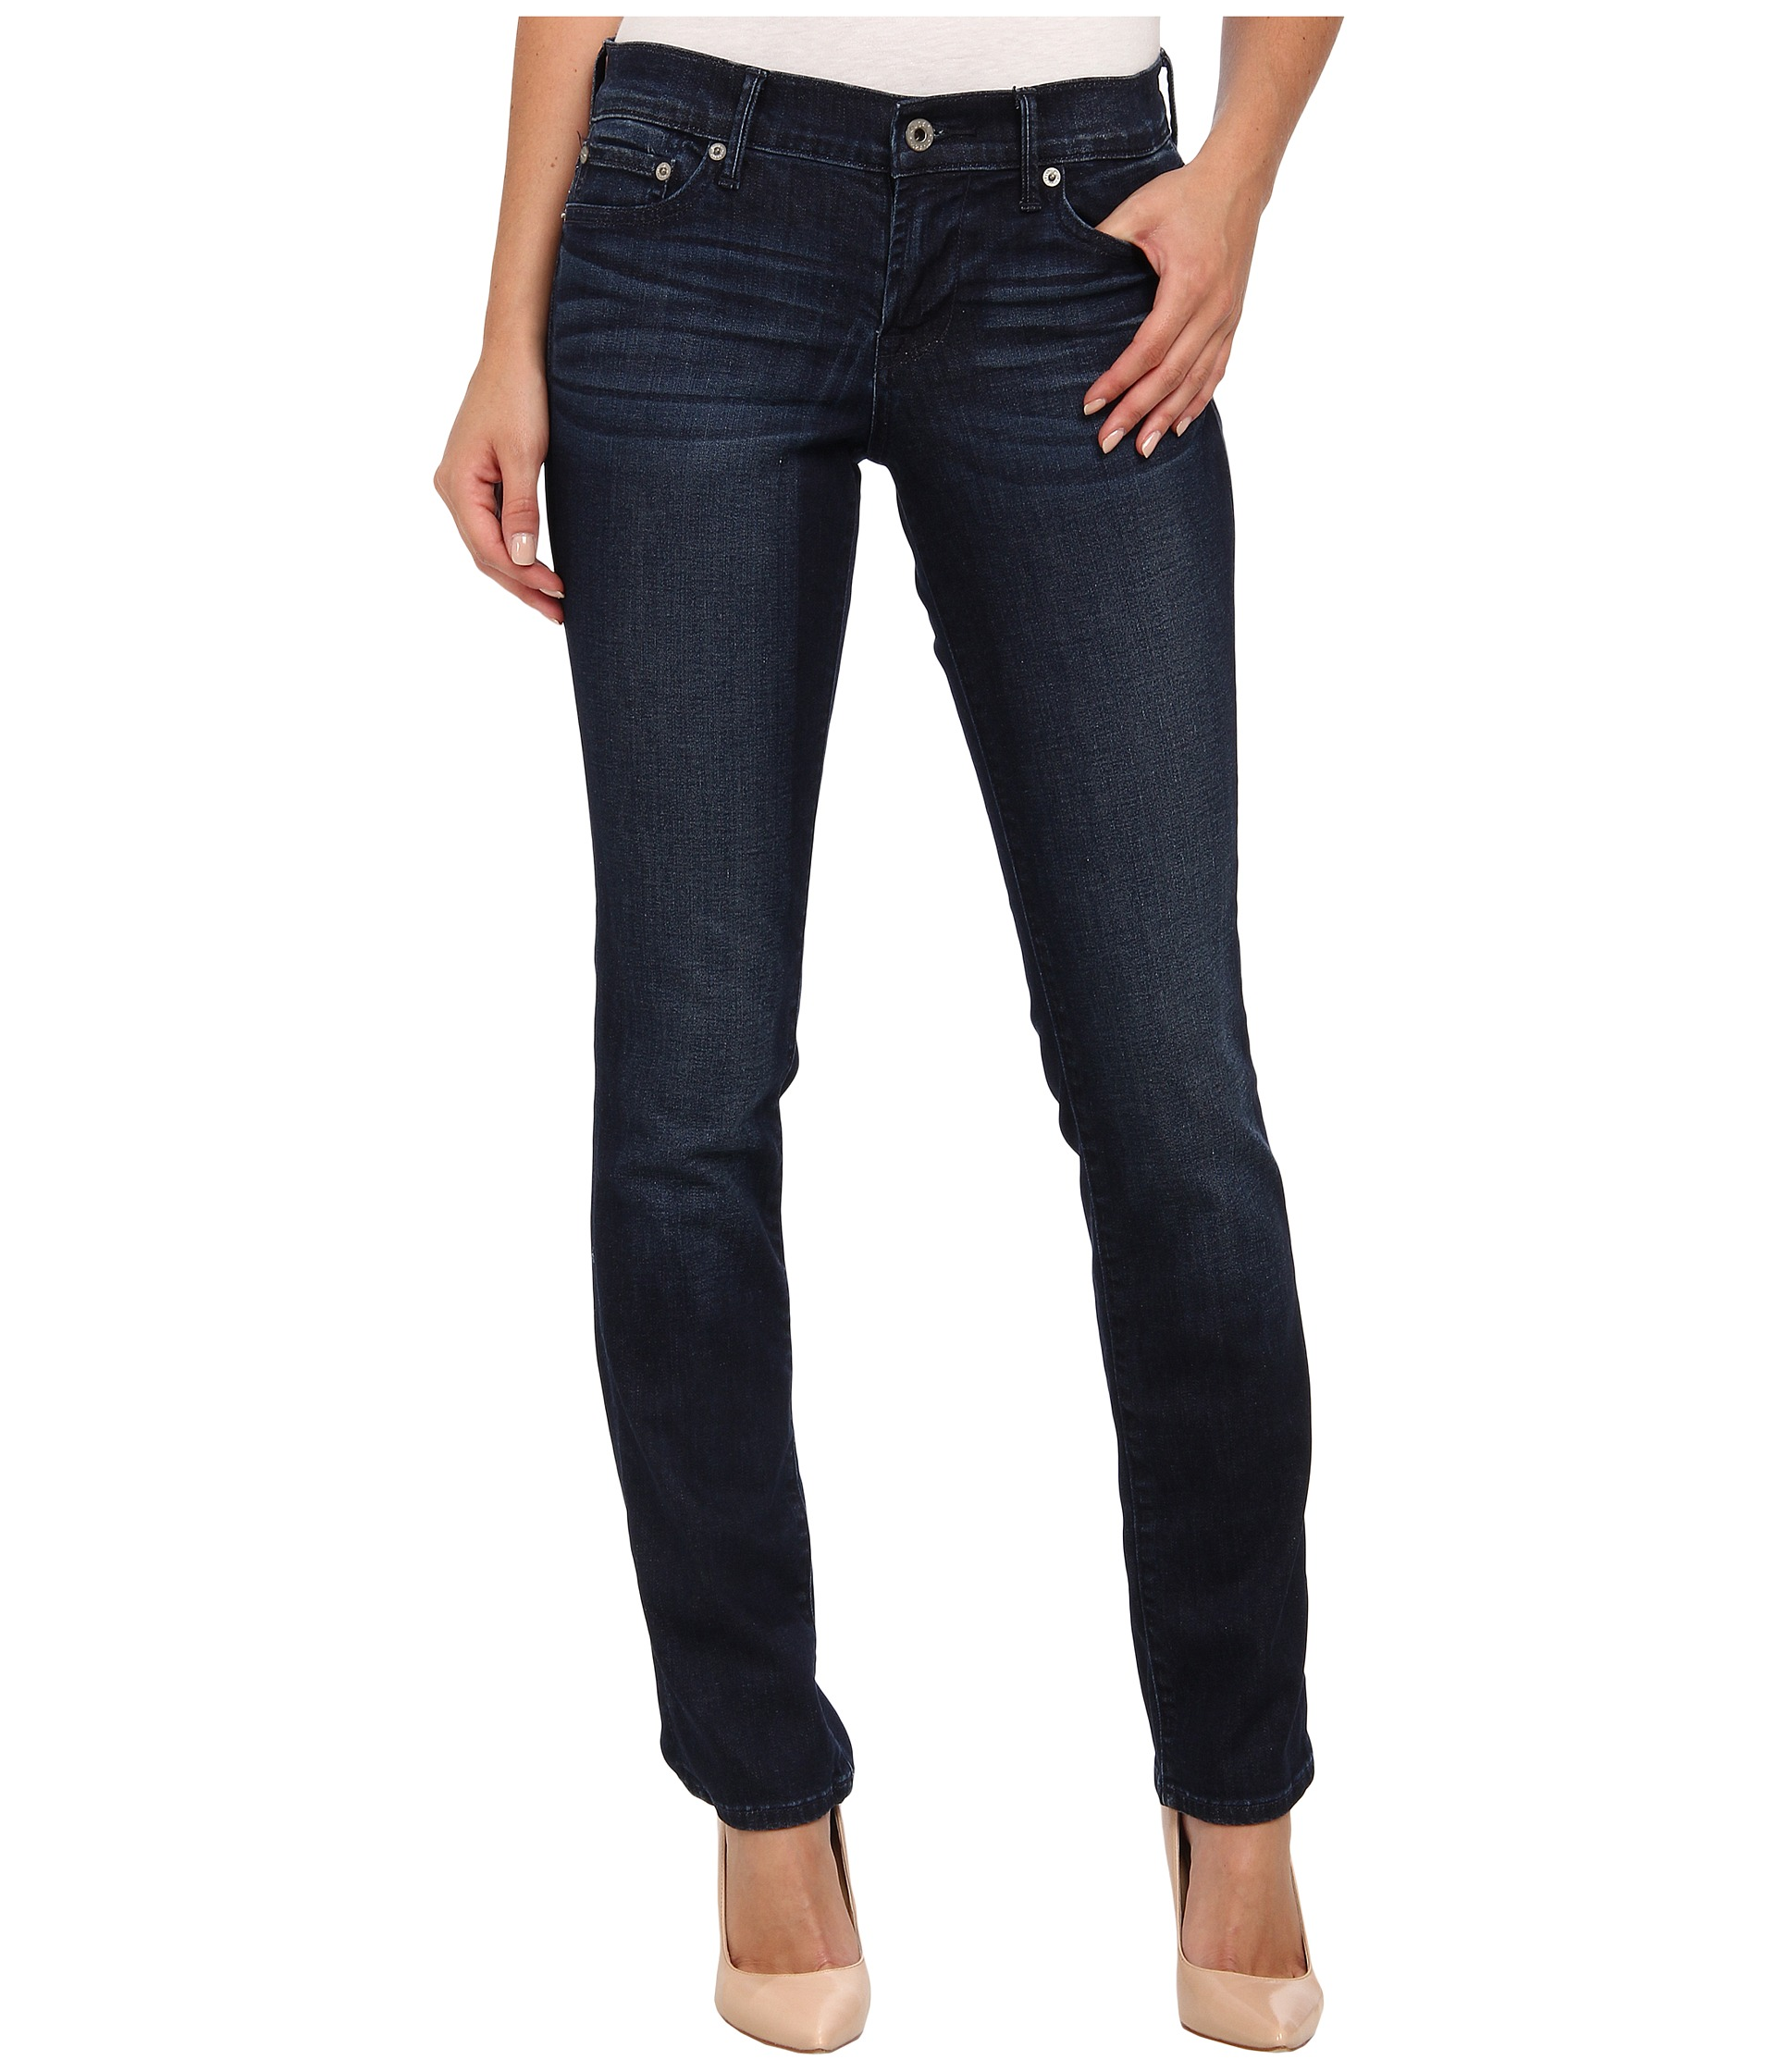 Lucky Brand Jeans Women Straight Leg | Shipped Free at Zappos